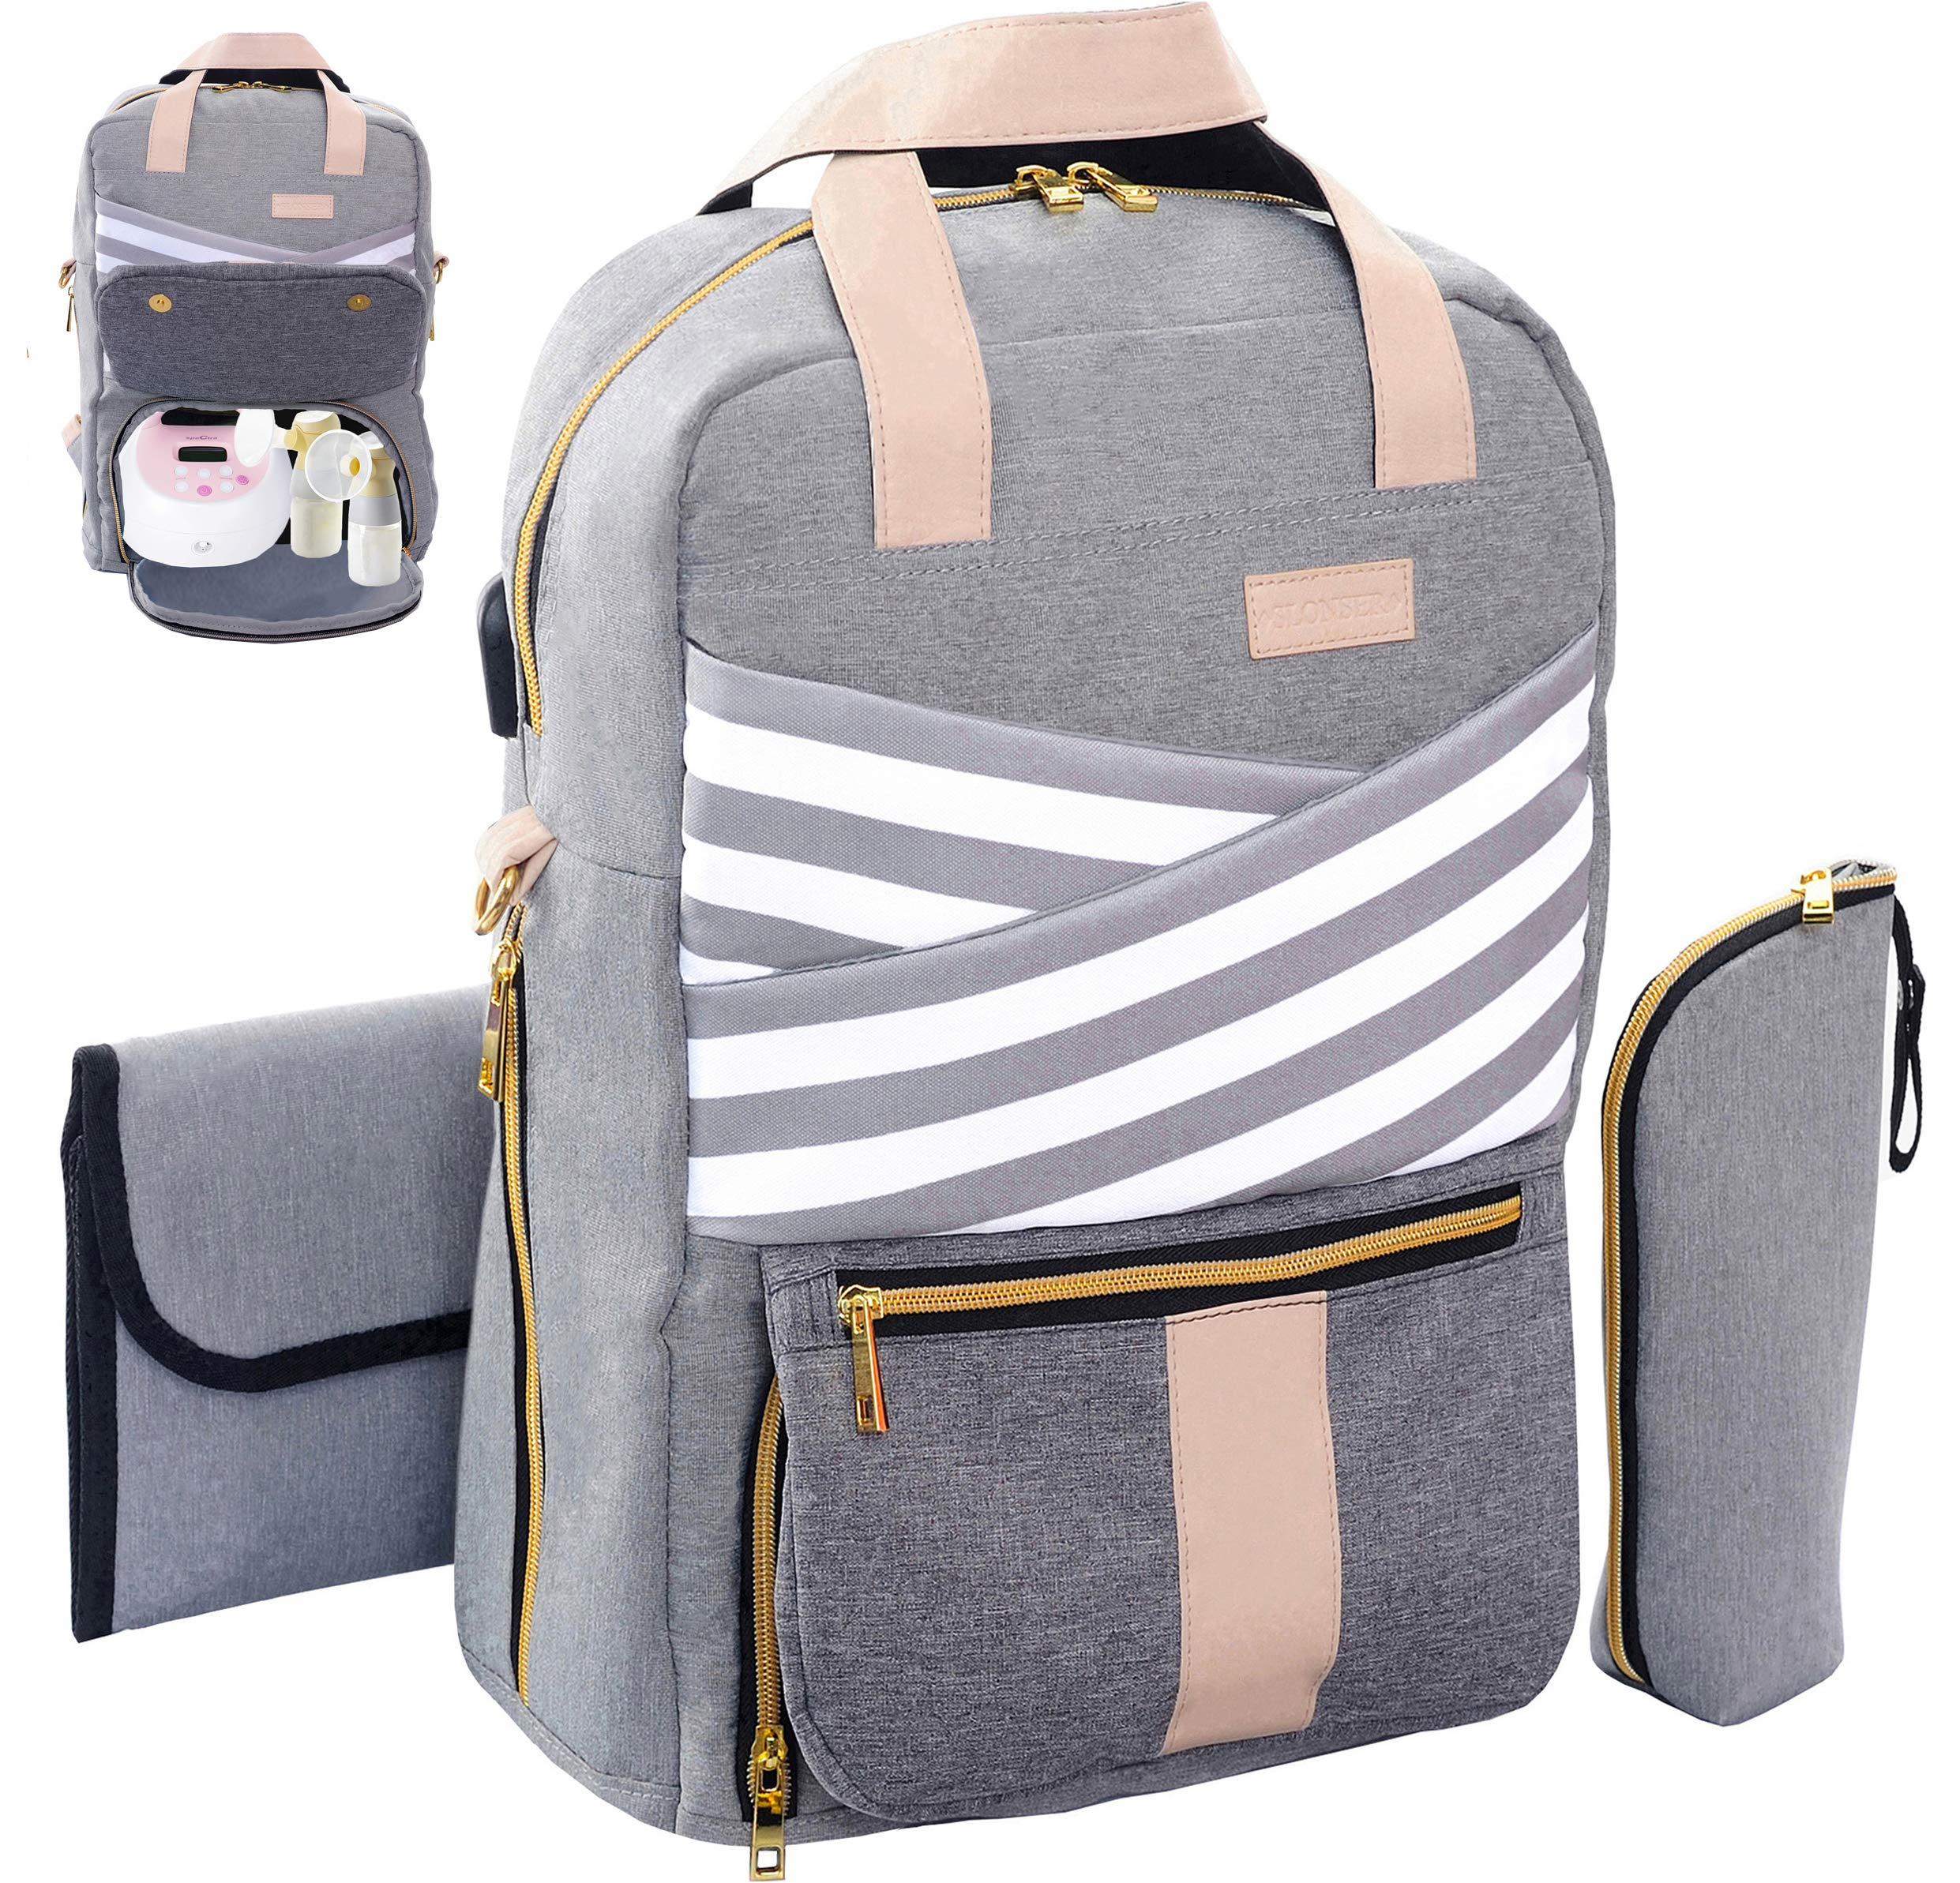 Breast Pump Backpack – Pumping Tote Bag for Travel – Large Capacity Convertible Diaper Backpack – Fits Most Major Pumps Including Spectra – Changing Pad | USB Charging Port | Pocket for Laptop – Gray